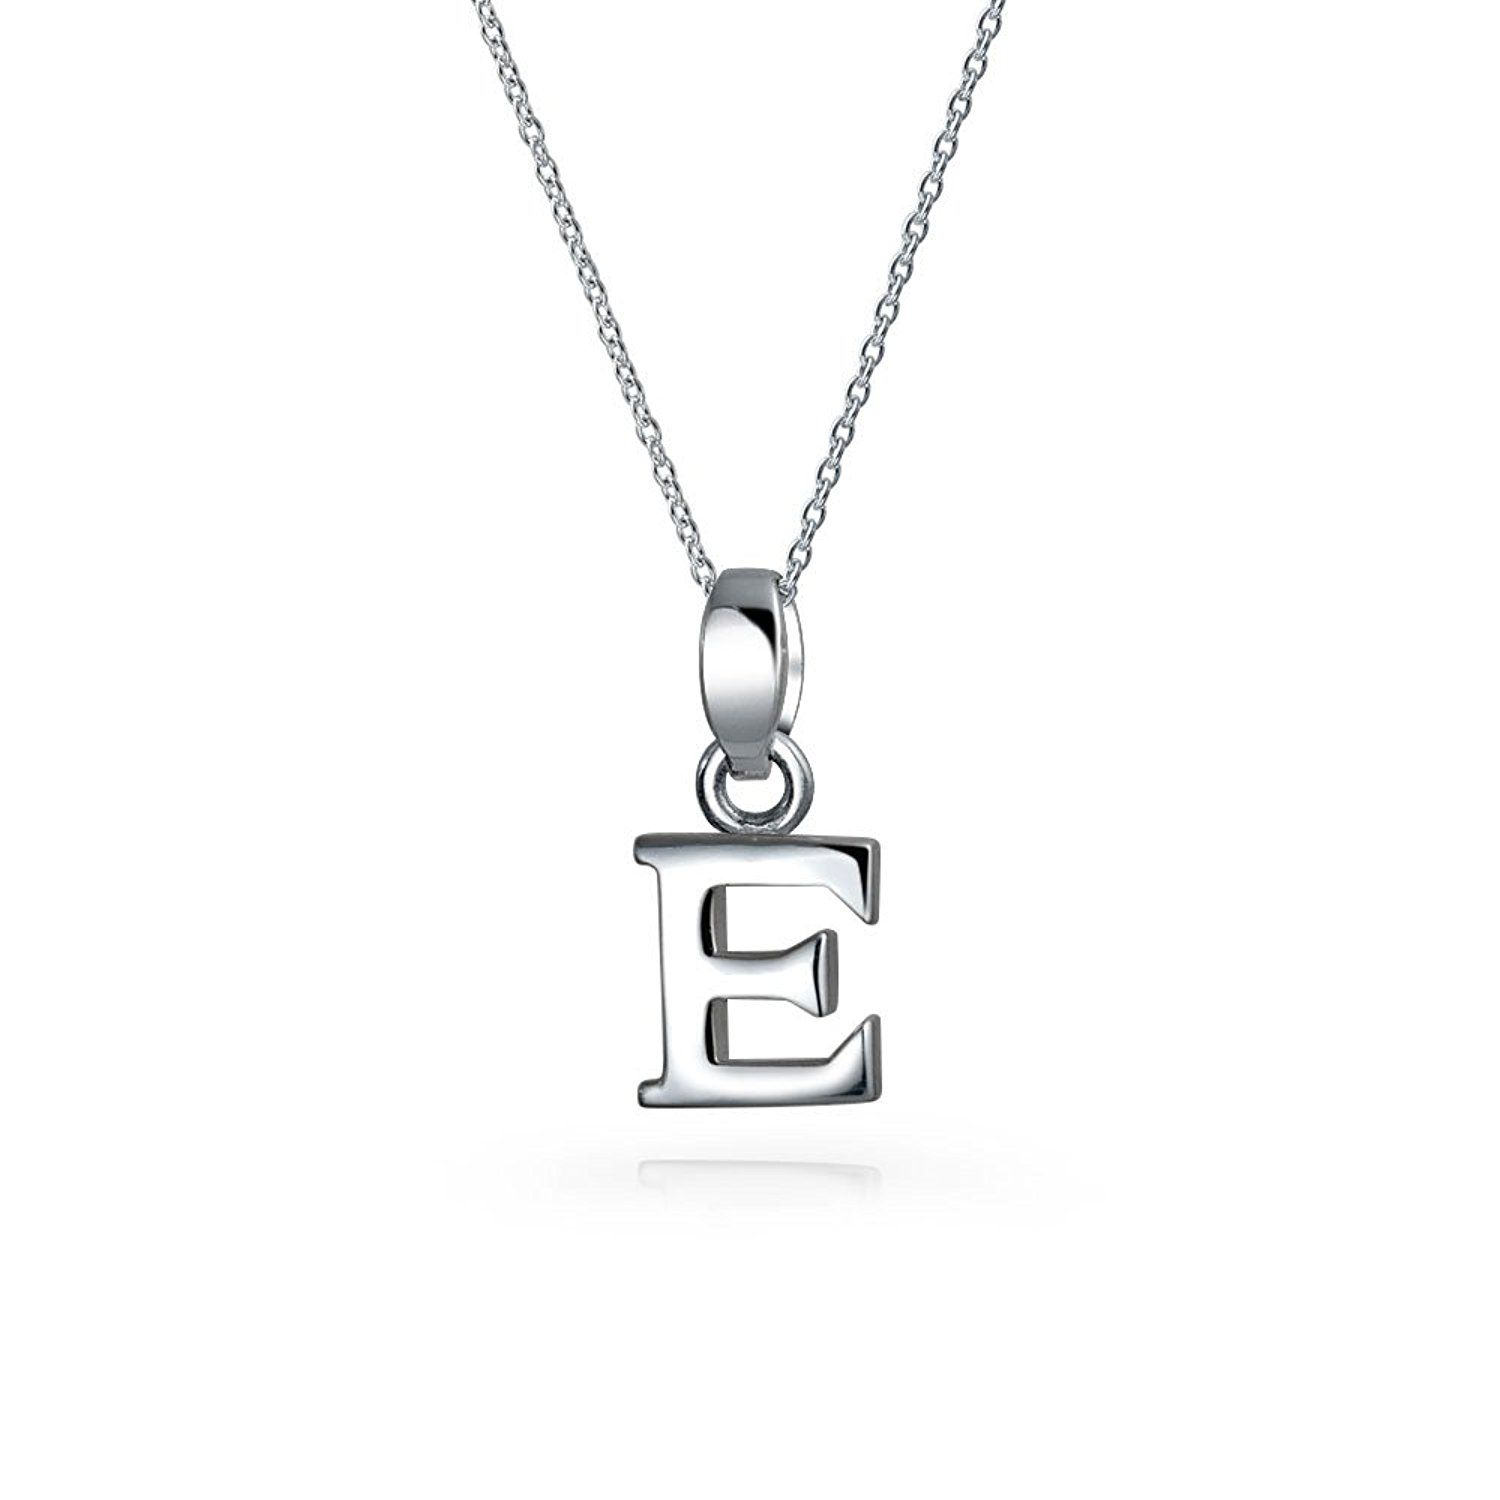 Block letter e sterling silver initial pendant necklace in